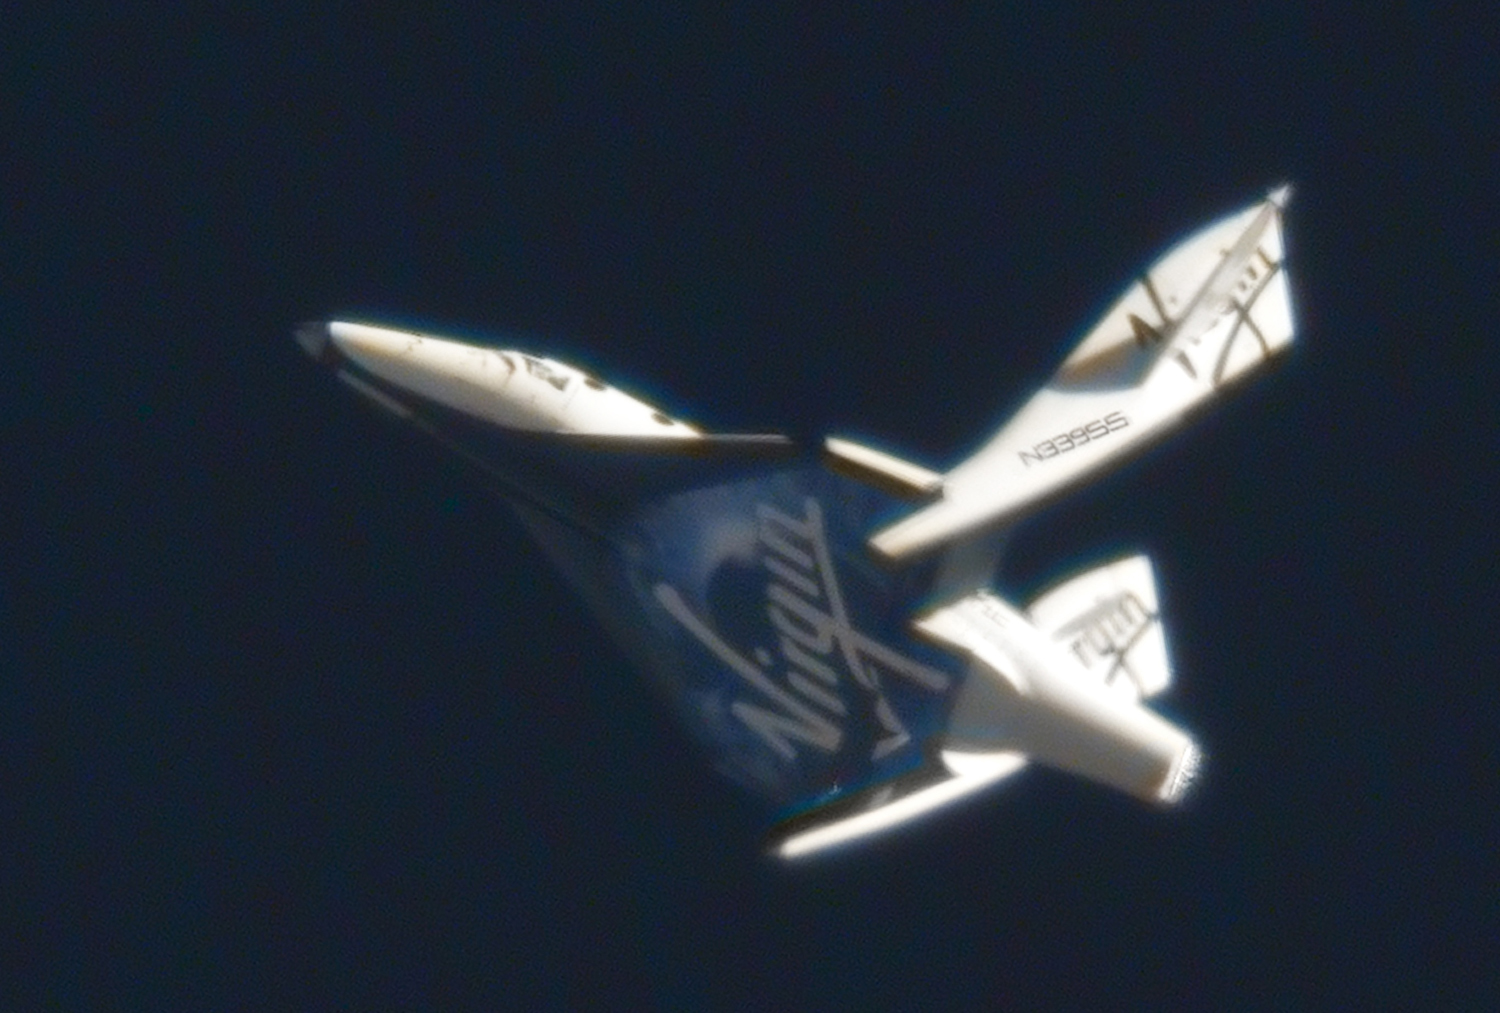 Virgin Galactic Pushes Private Spaceship Envelope in Test Flights